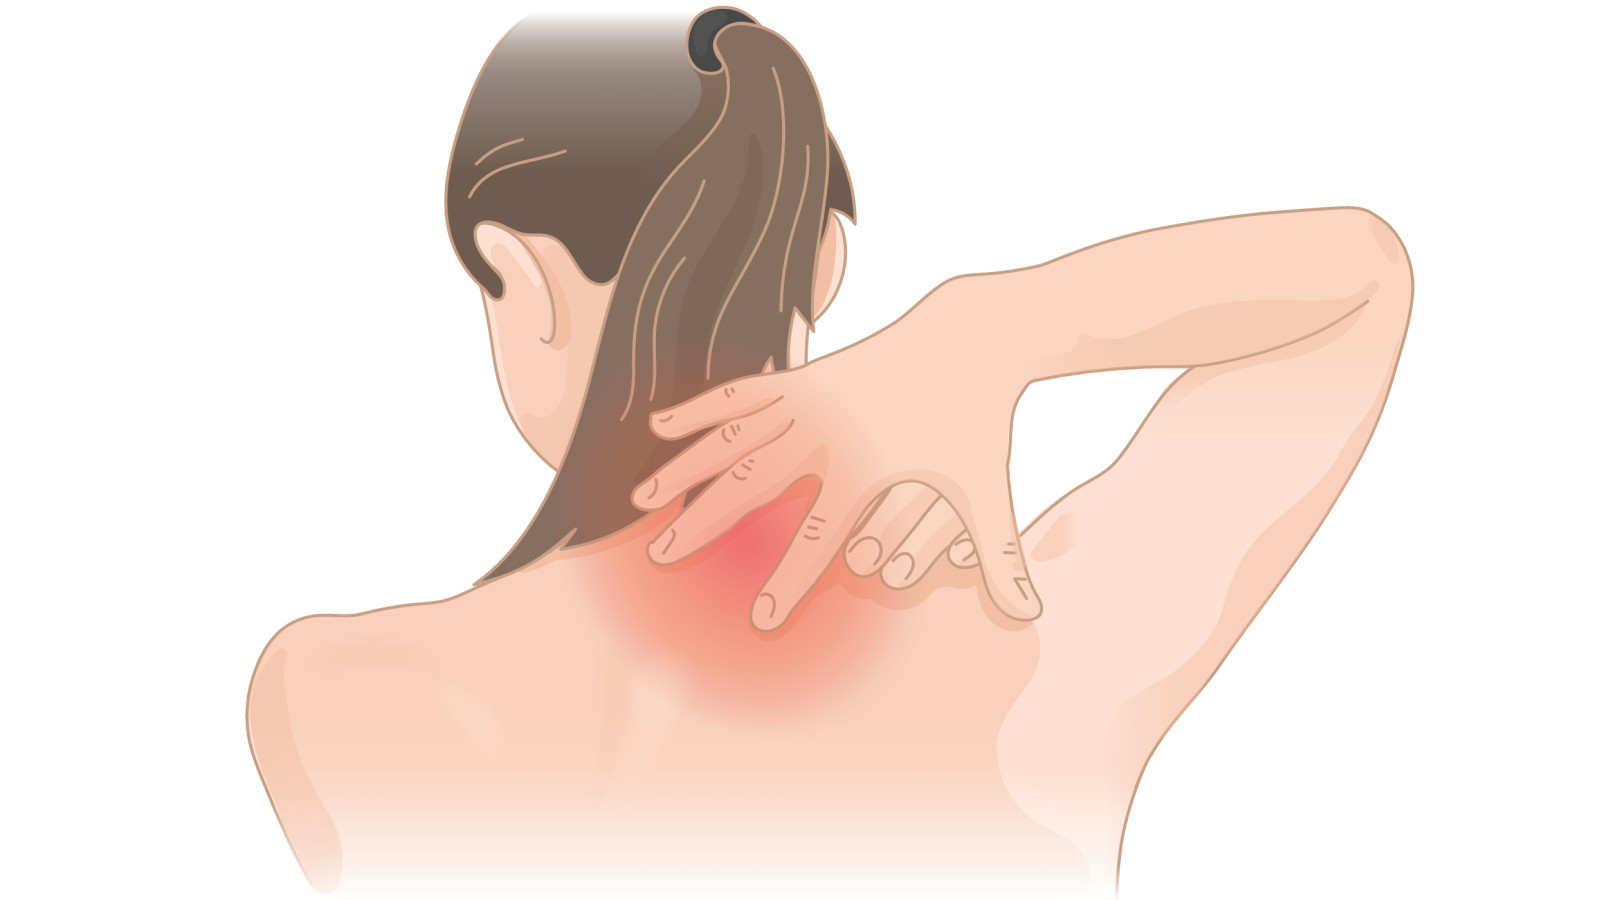 Pinched Nerve Top Of Spine Things To Know Before You Get This